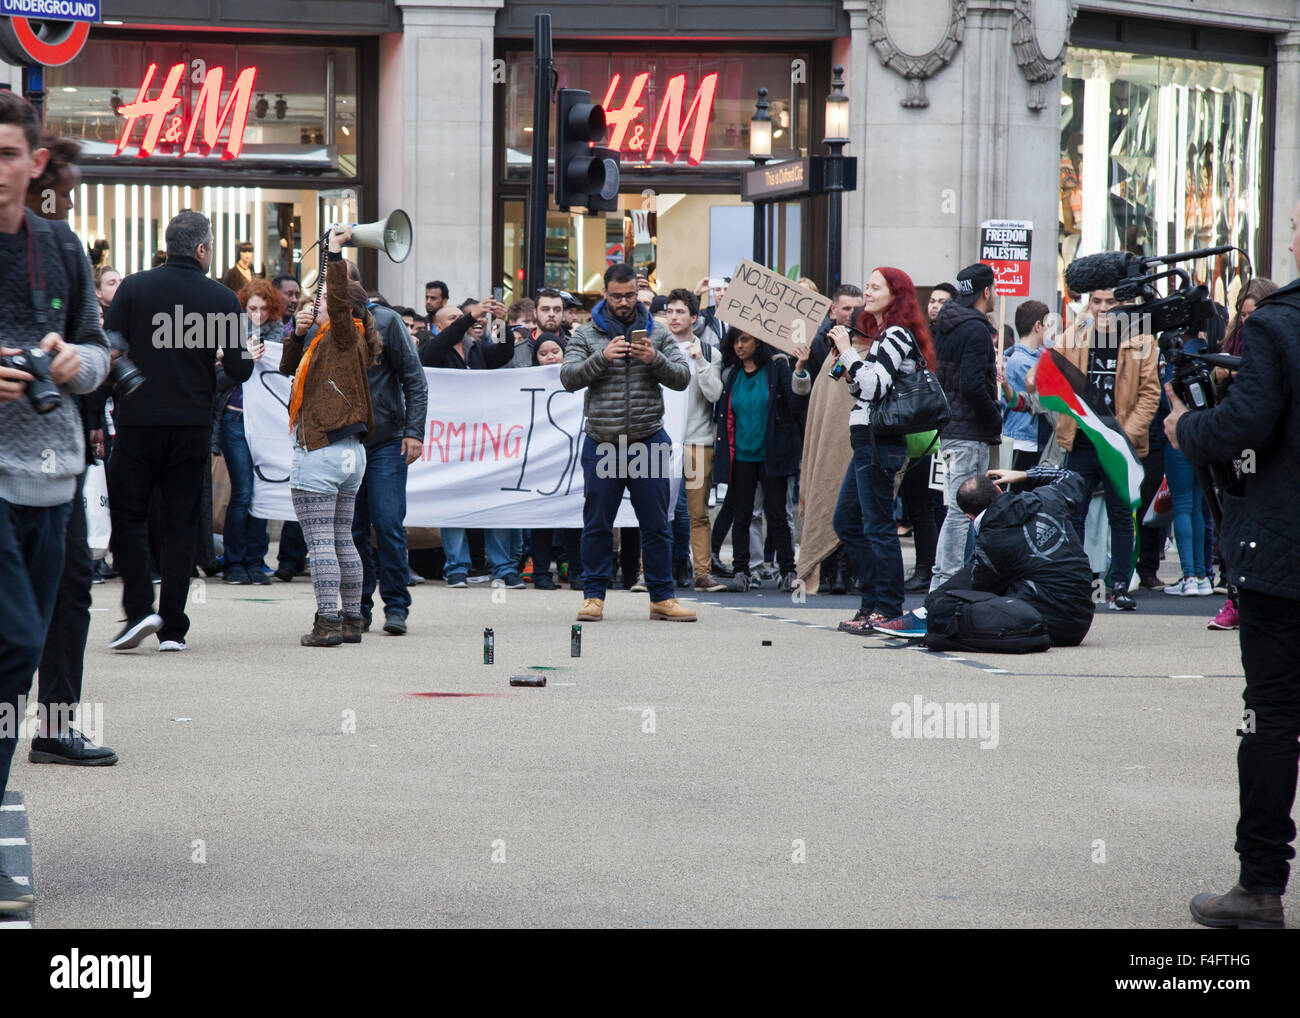 London, UK. 17th October, 2015. Pro-Palestinian Protesters in Oxford Circus Credit:  Louis Champion/Alamy Live News - Stock Image